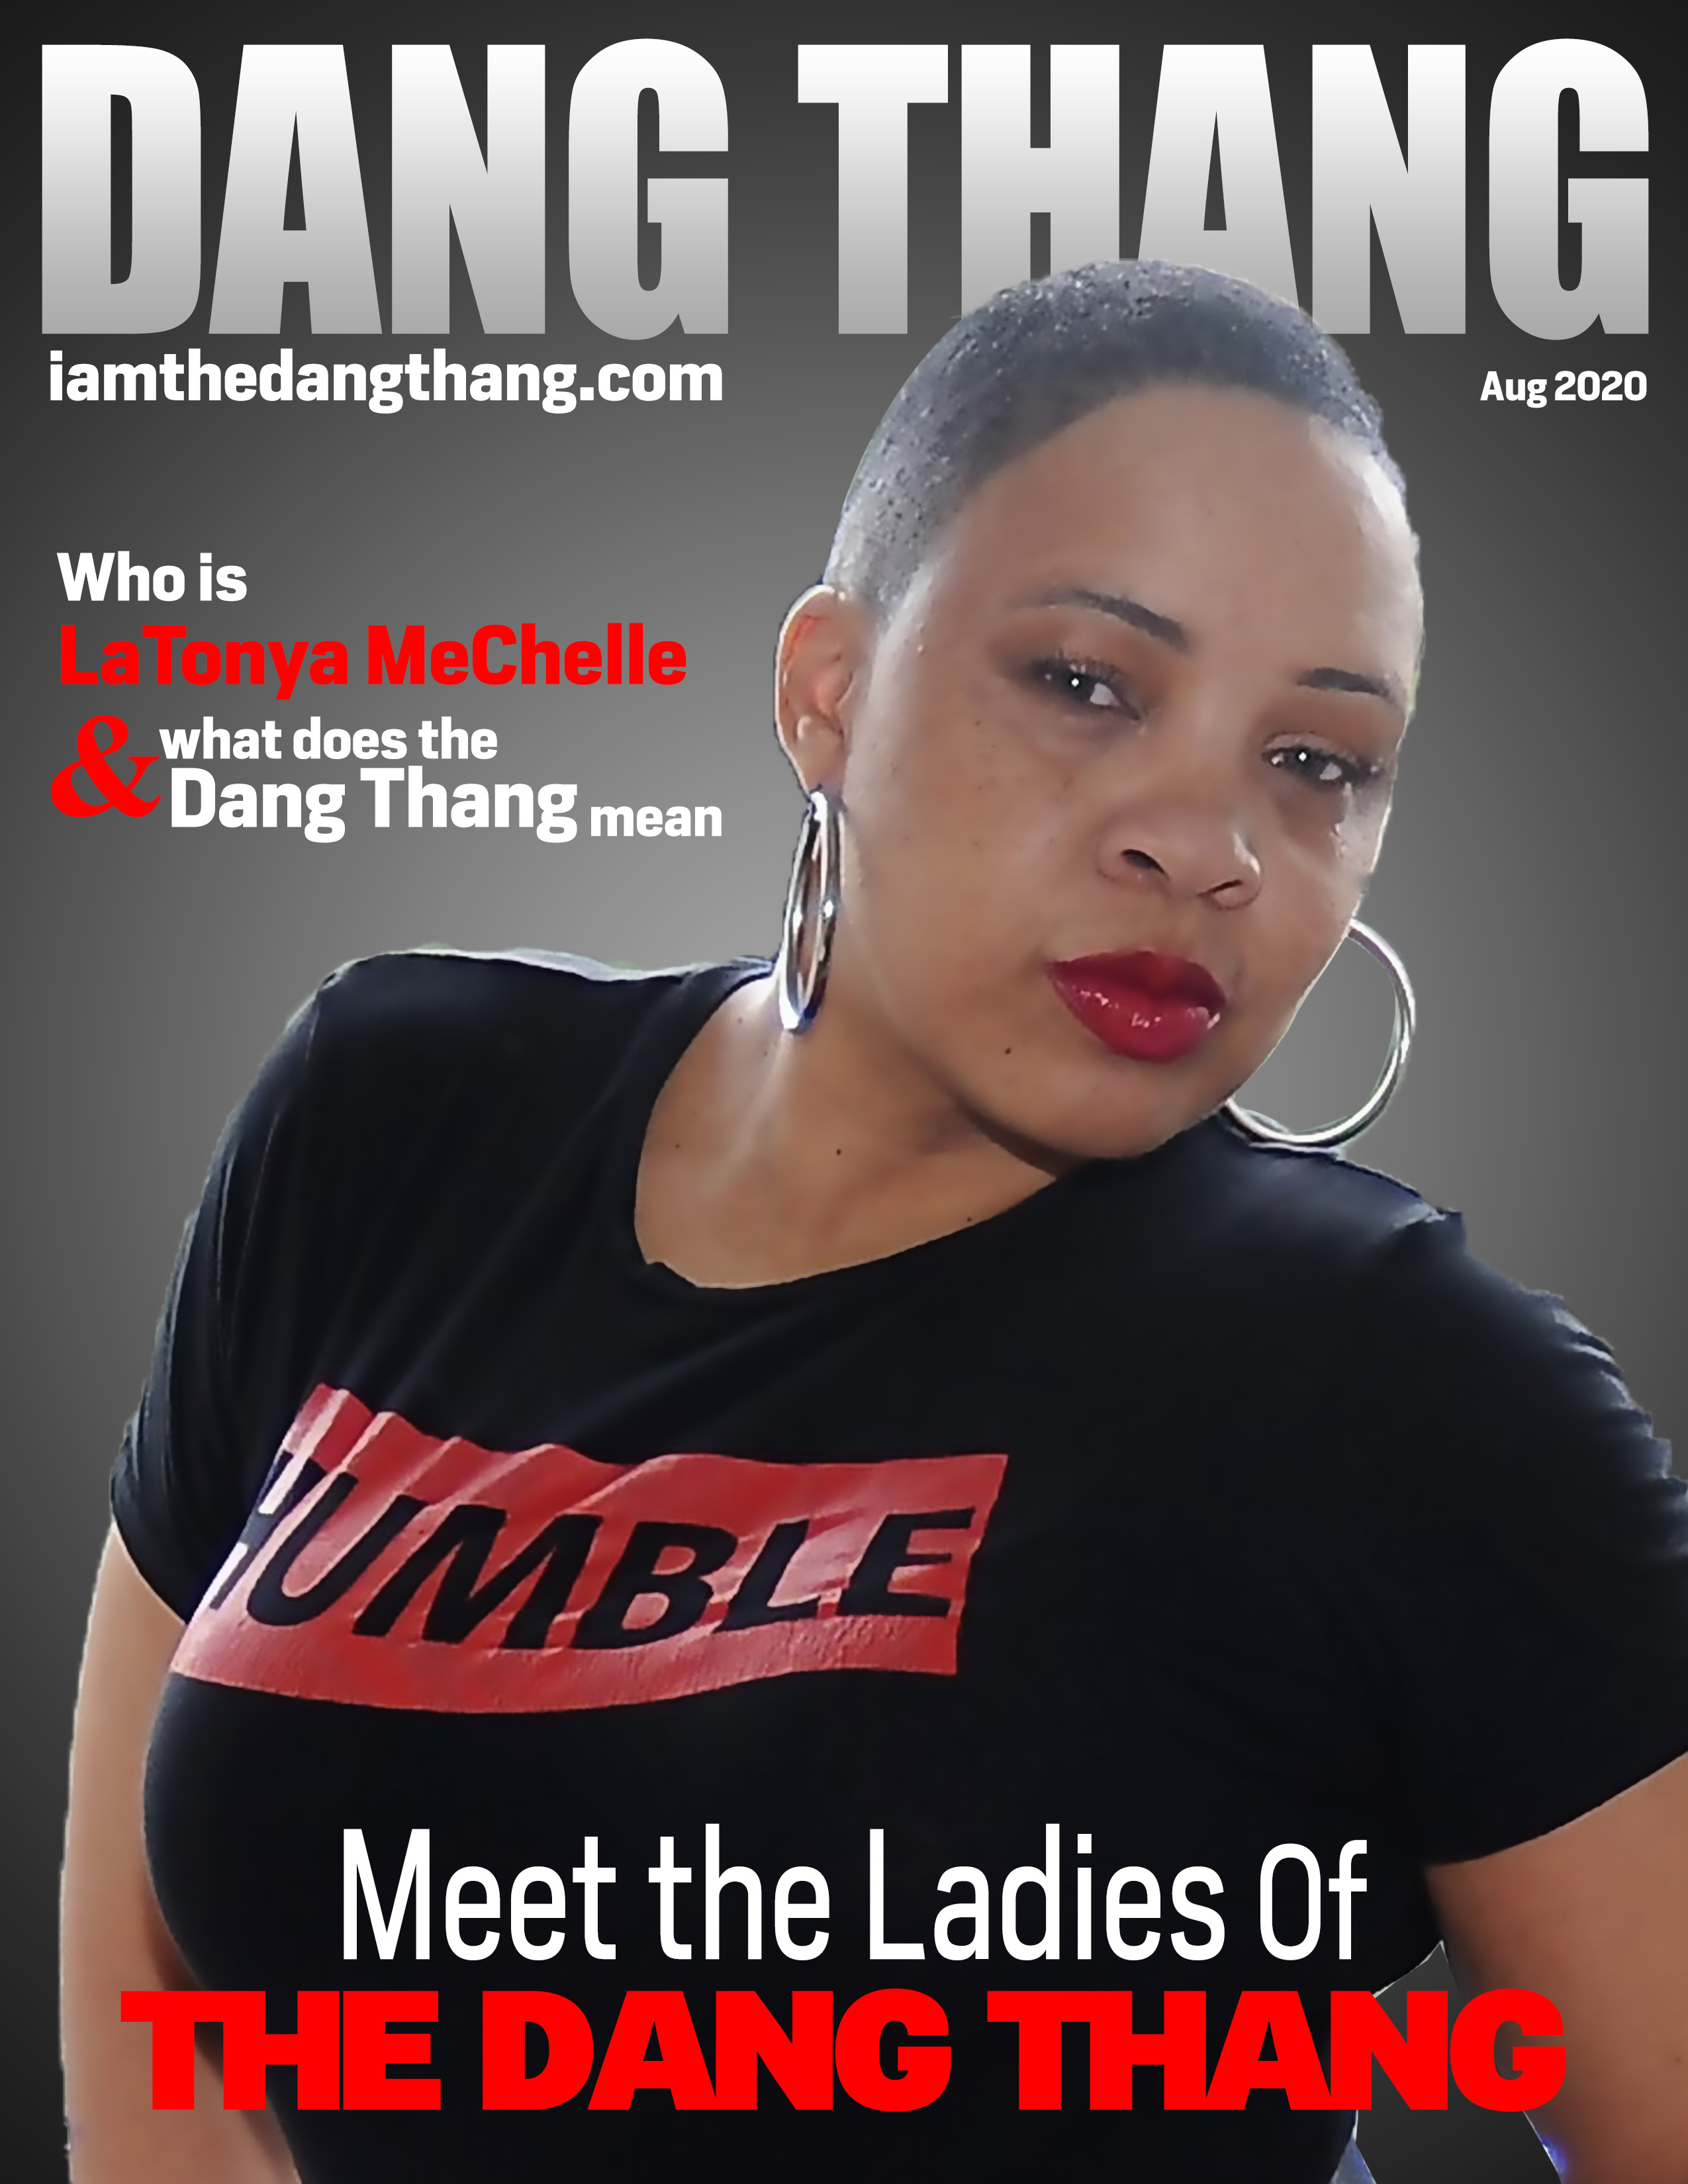 Dang Thang Magazine to Focus on Self Empowerment and Healing